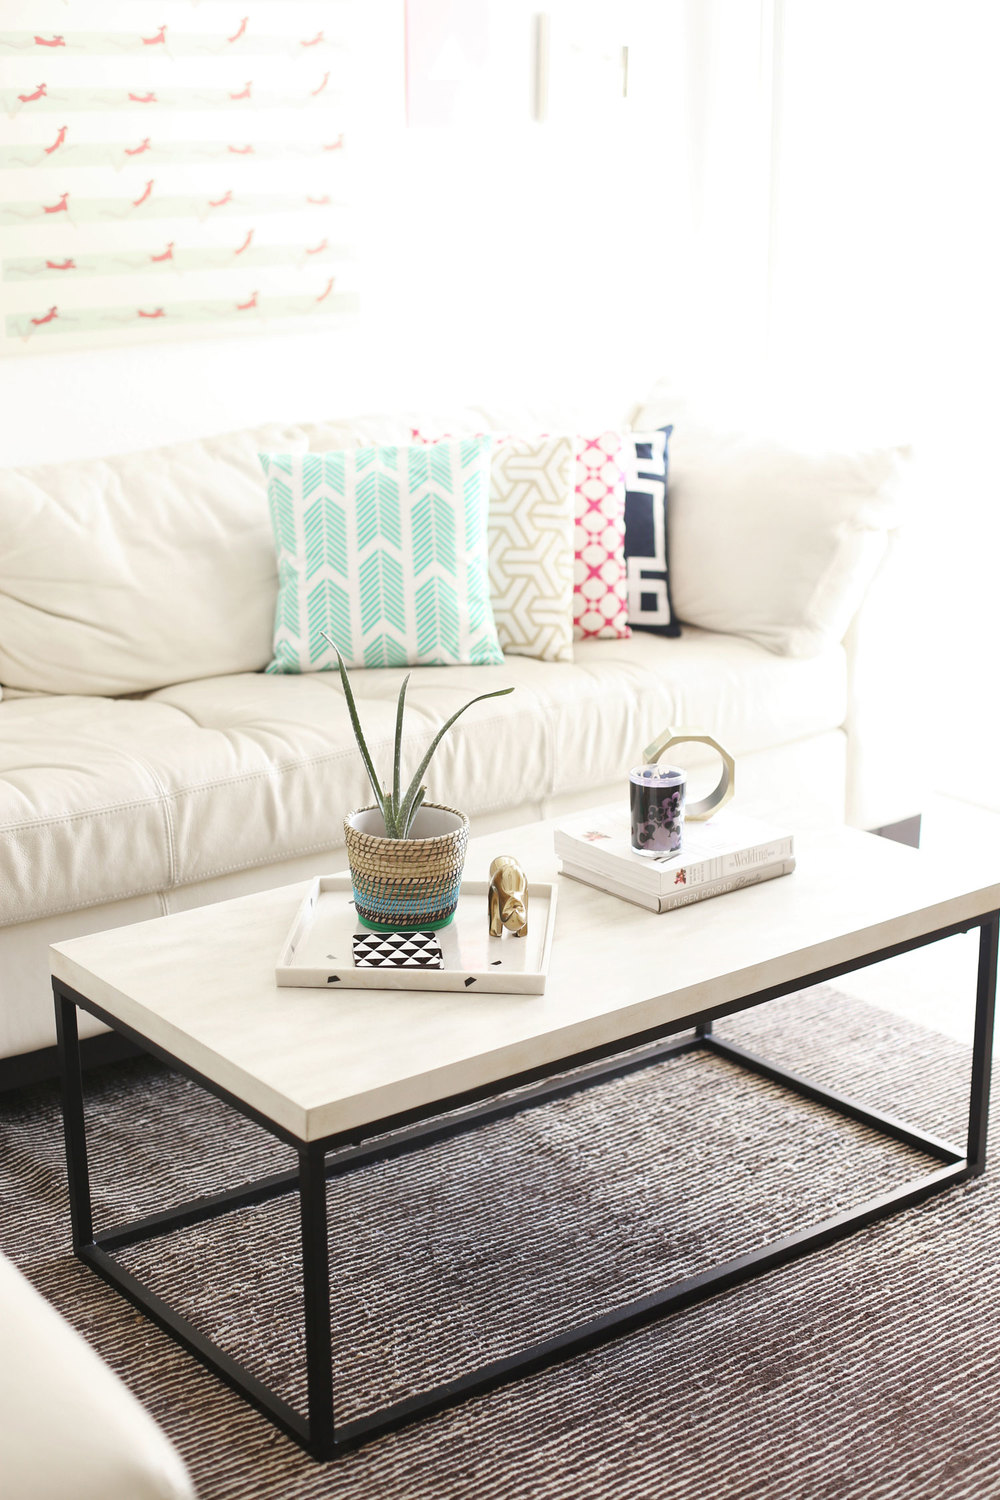 How To Style A Coffee Table Like An Interior Designer